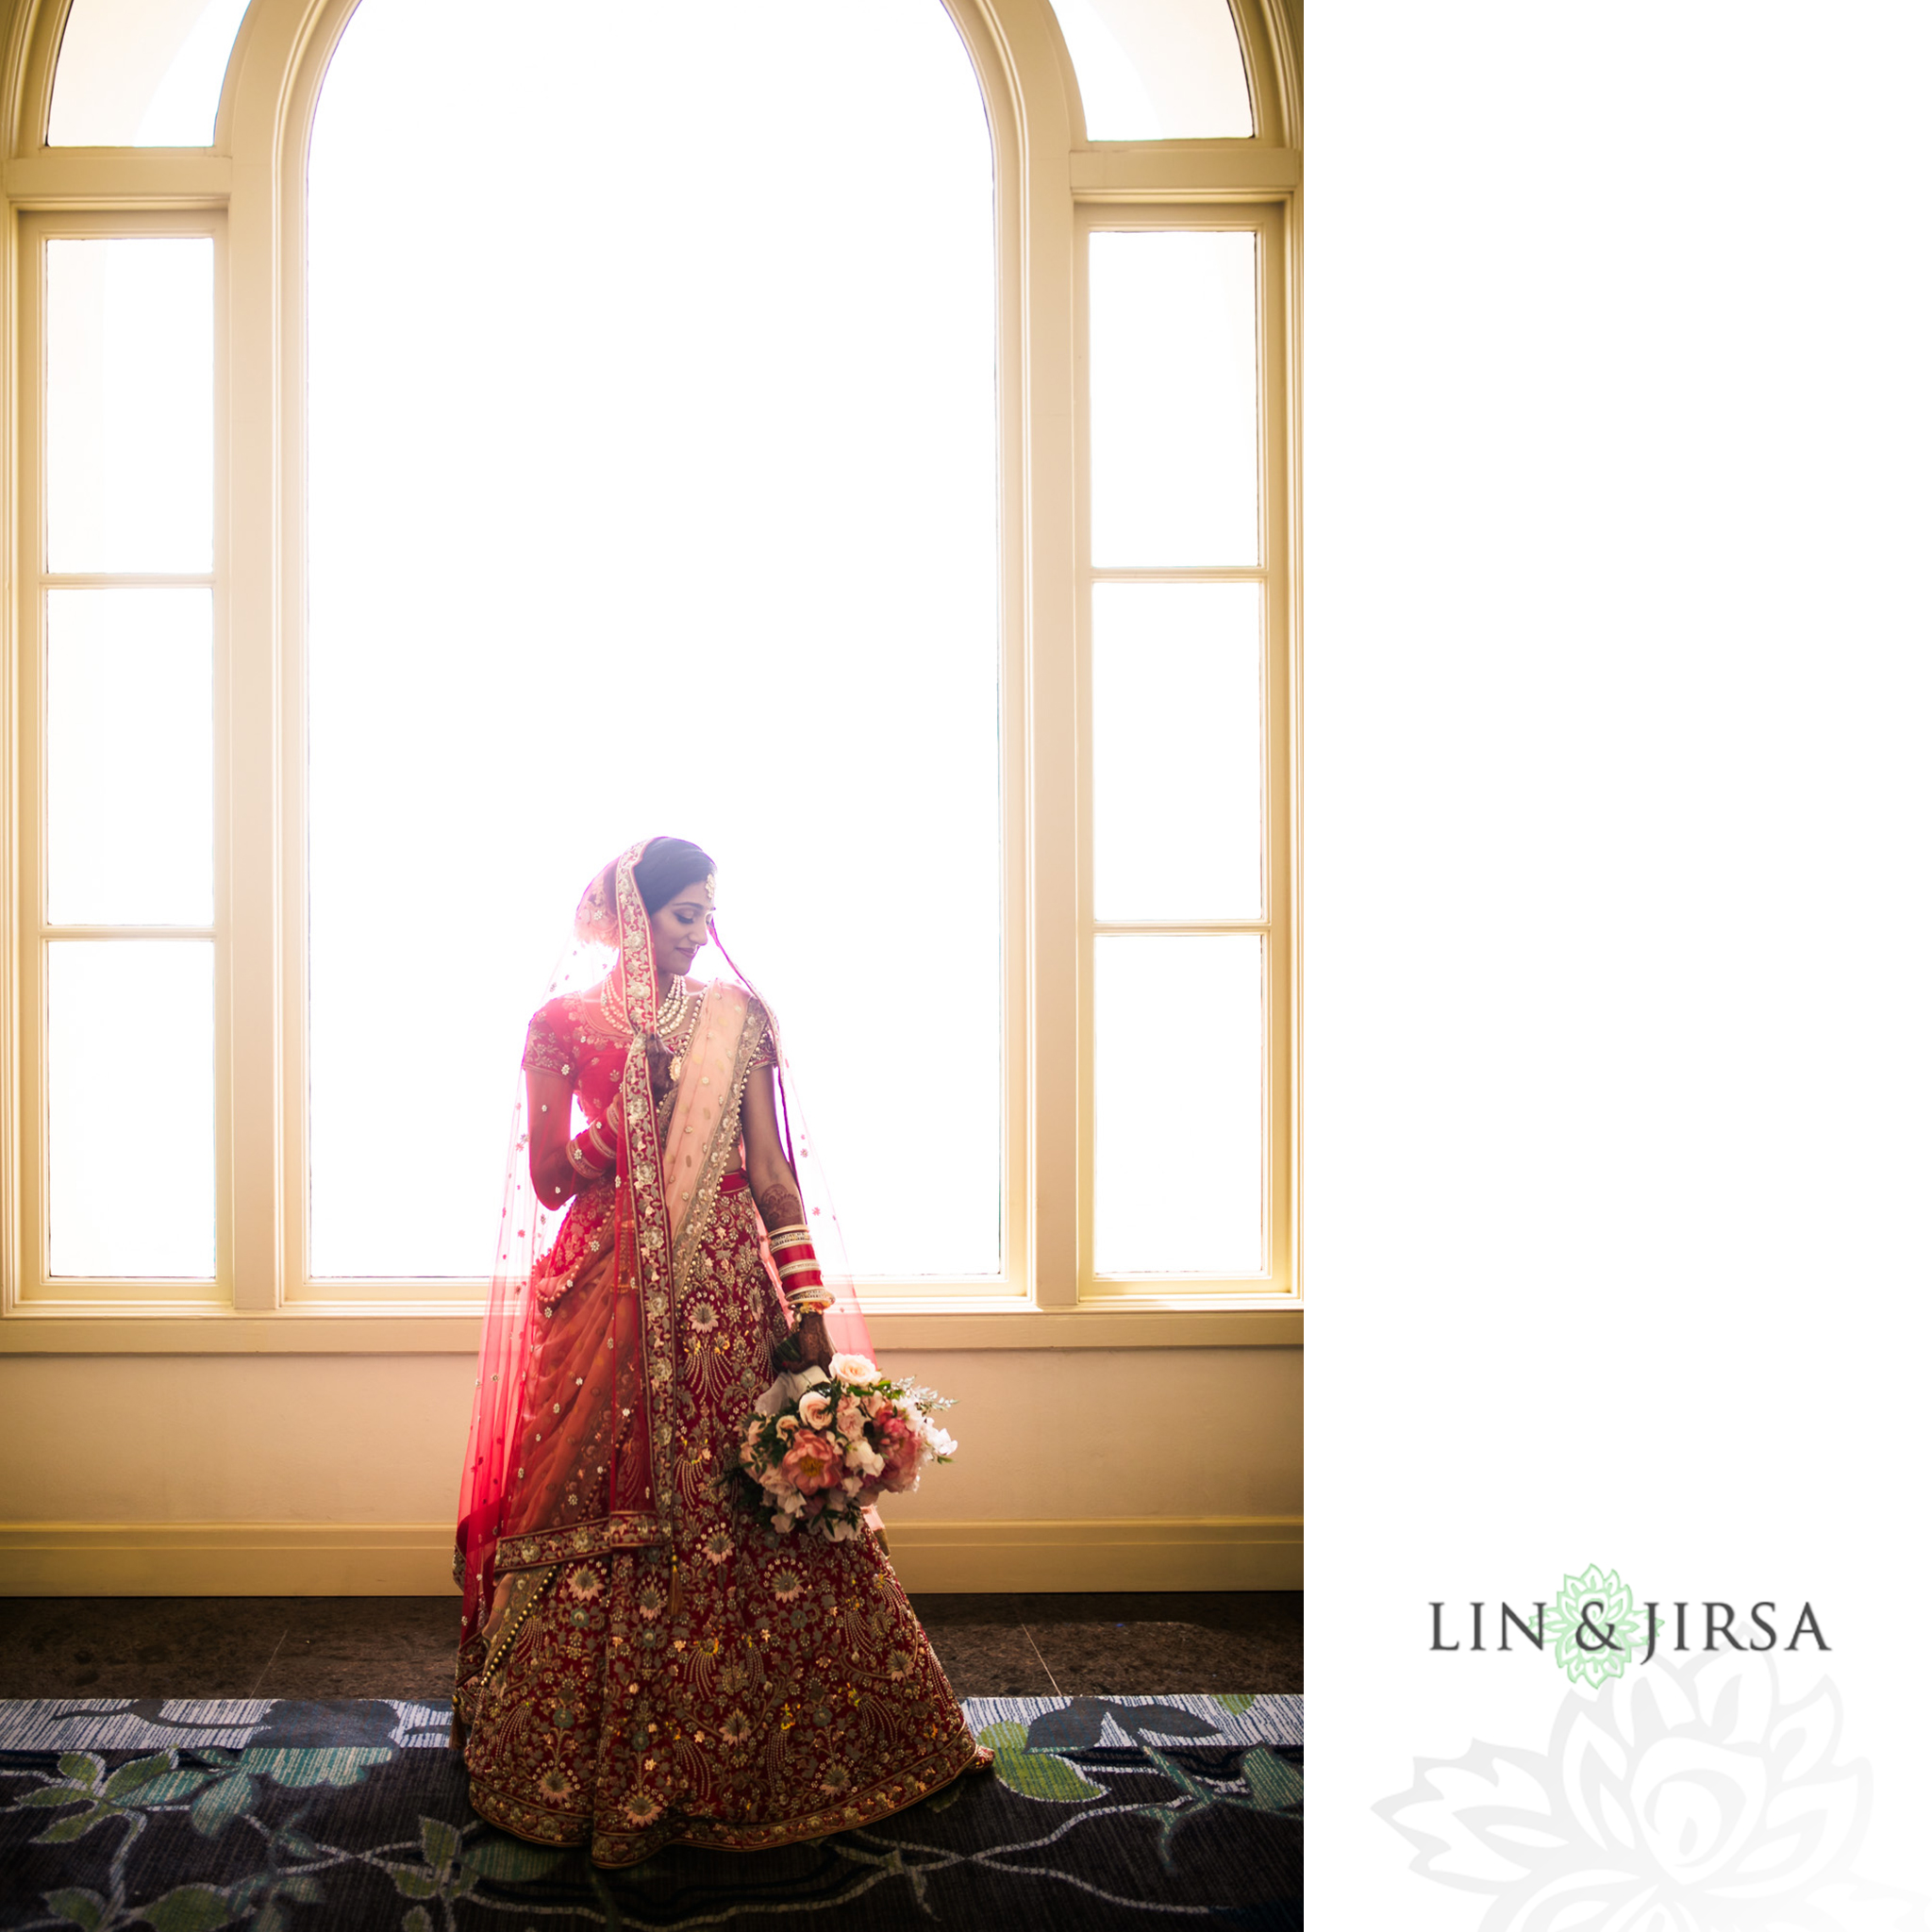 26 Ritz Carlton Laguna Niguel Indian Wedding Photography